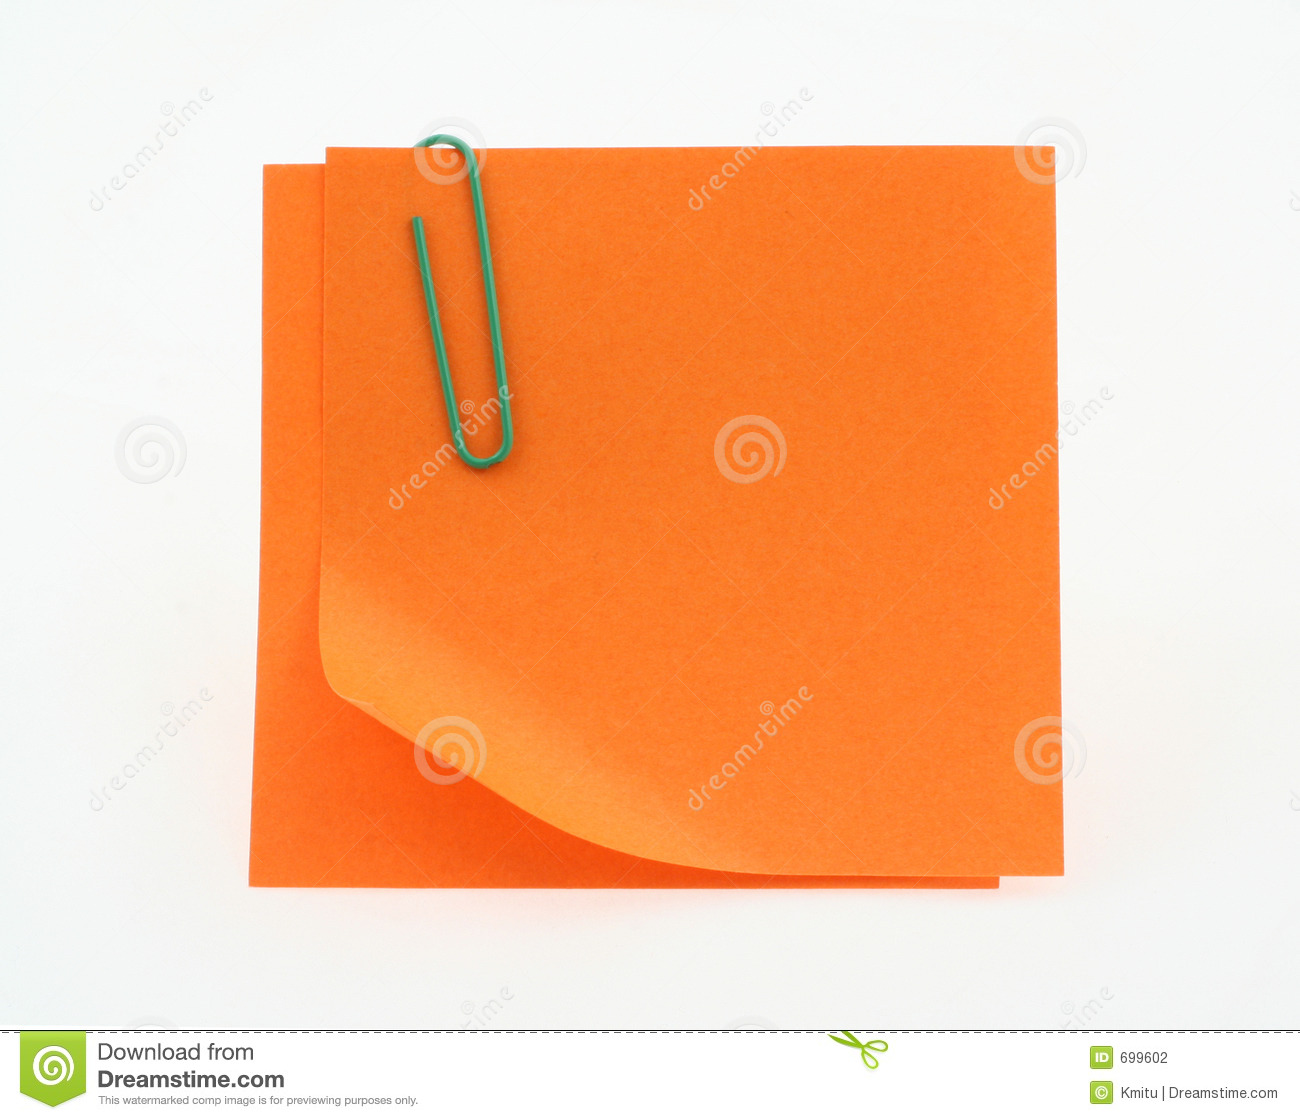 Hermiston (OR) United States  city images : Orange Post it Notes With A Bent Corner On White Stock Photography ...